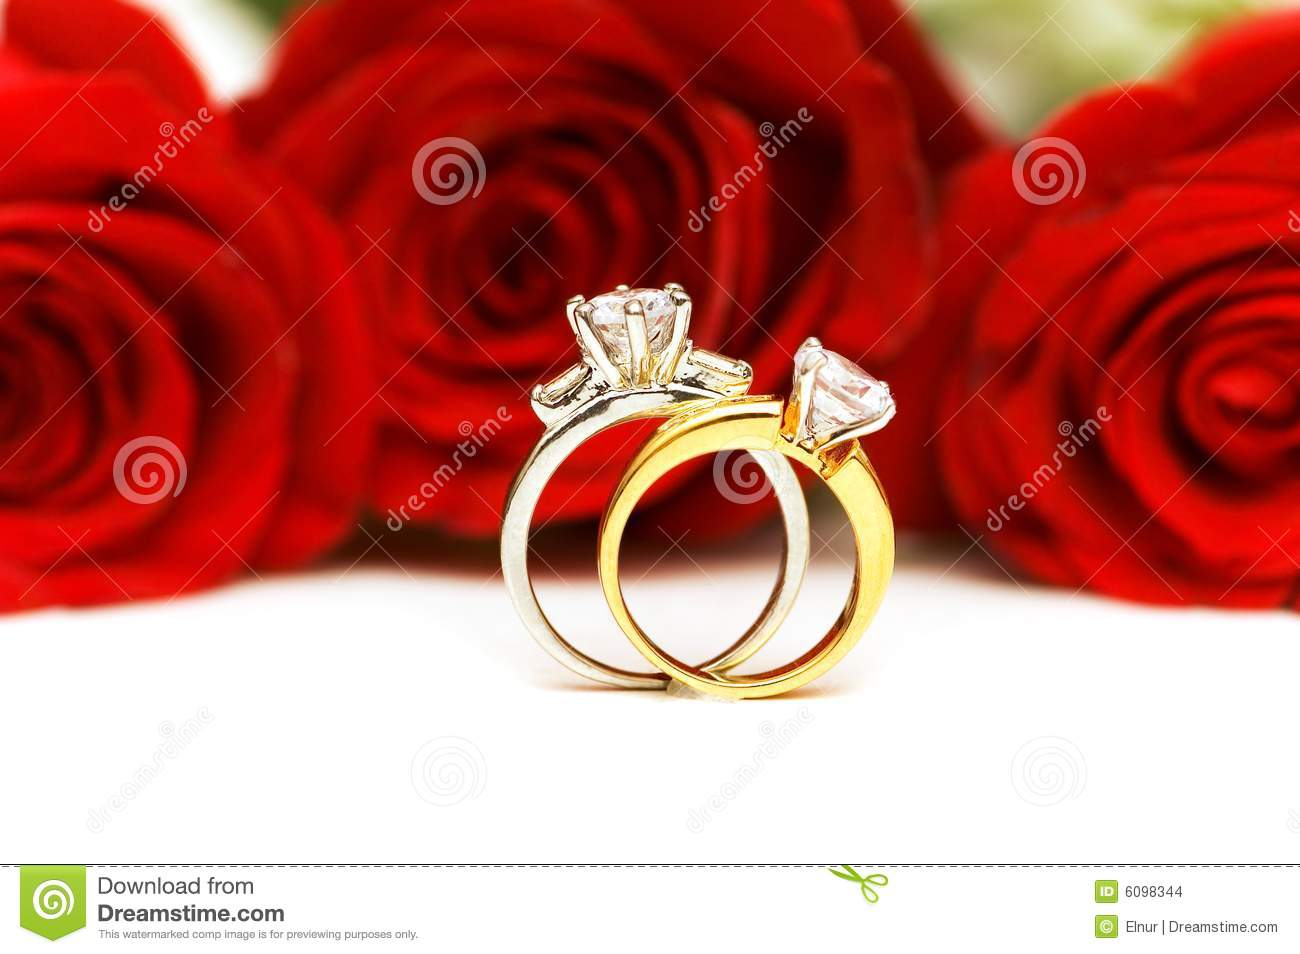 Diamond rings and roses stock photo Image of beautiful